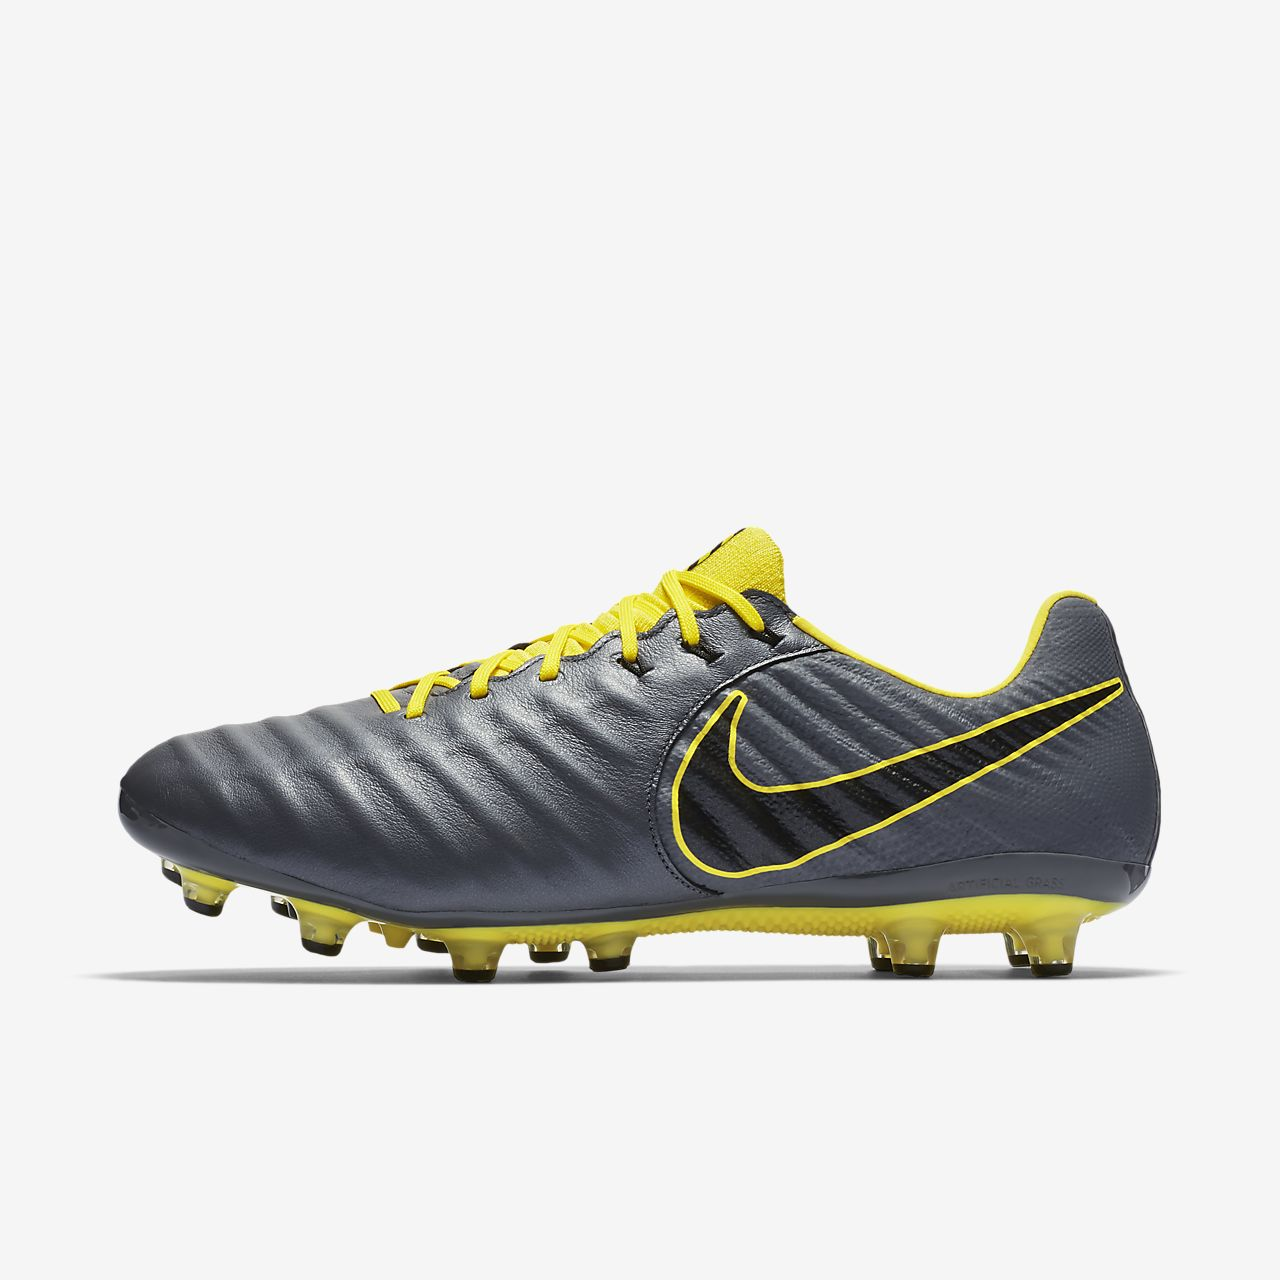 55596fca3 Nike Legend VII Elite AG-PRO Artificial-Grass Football Boot. Nike.com GB